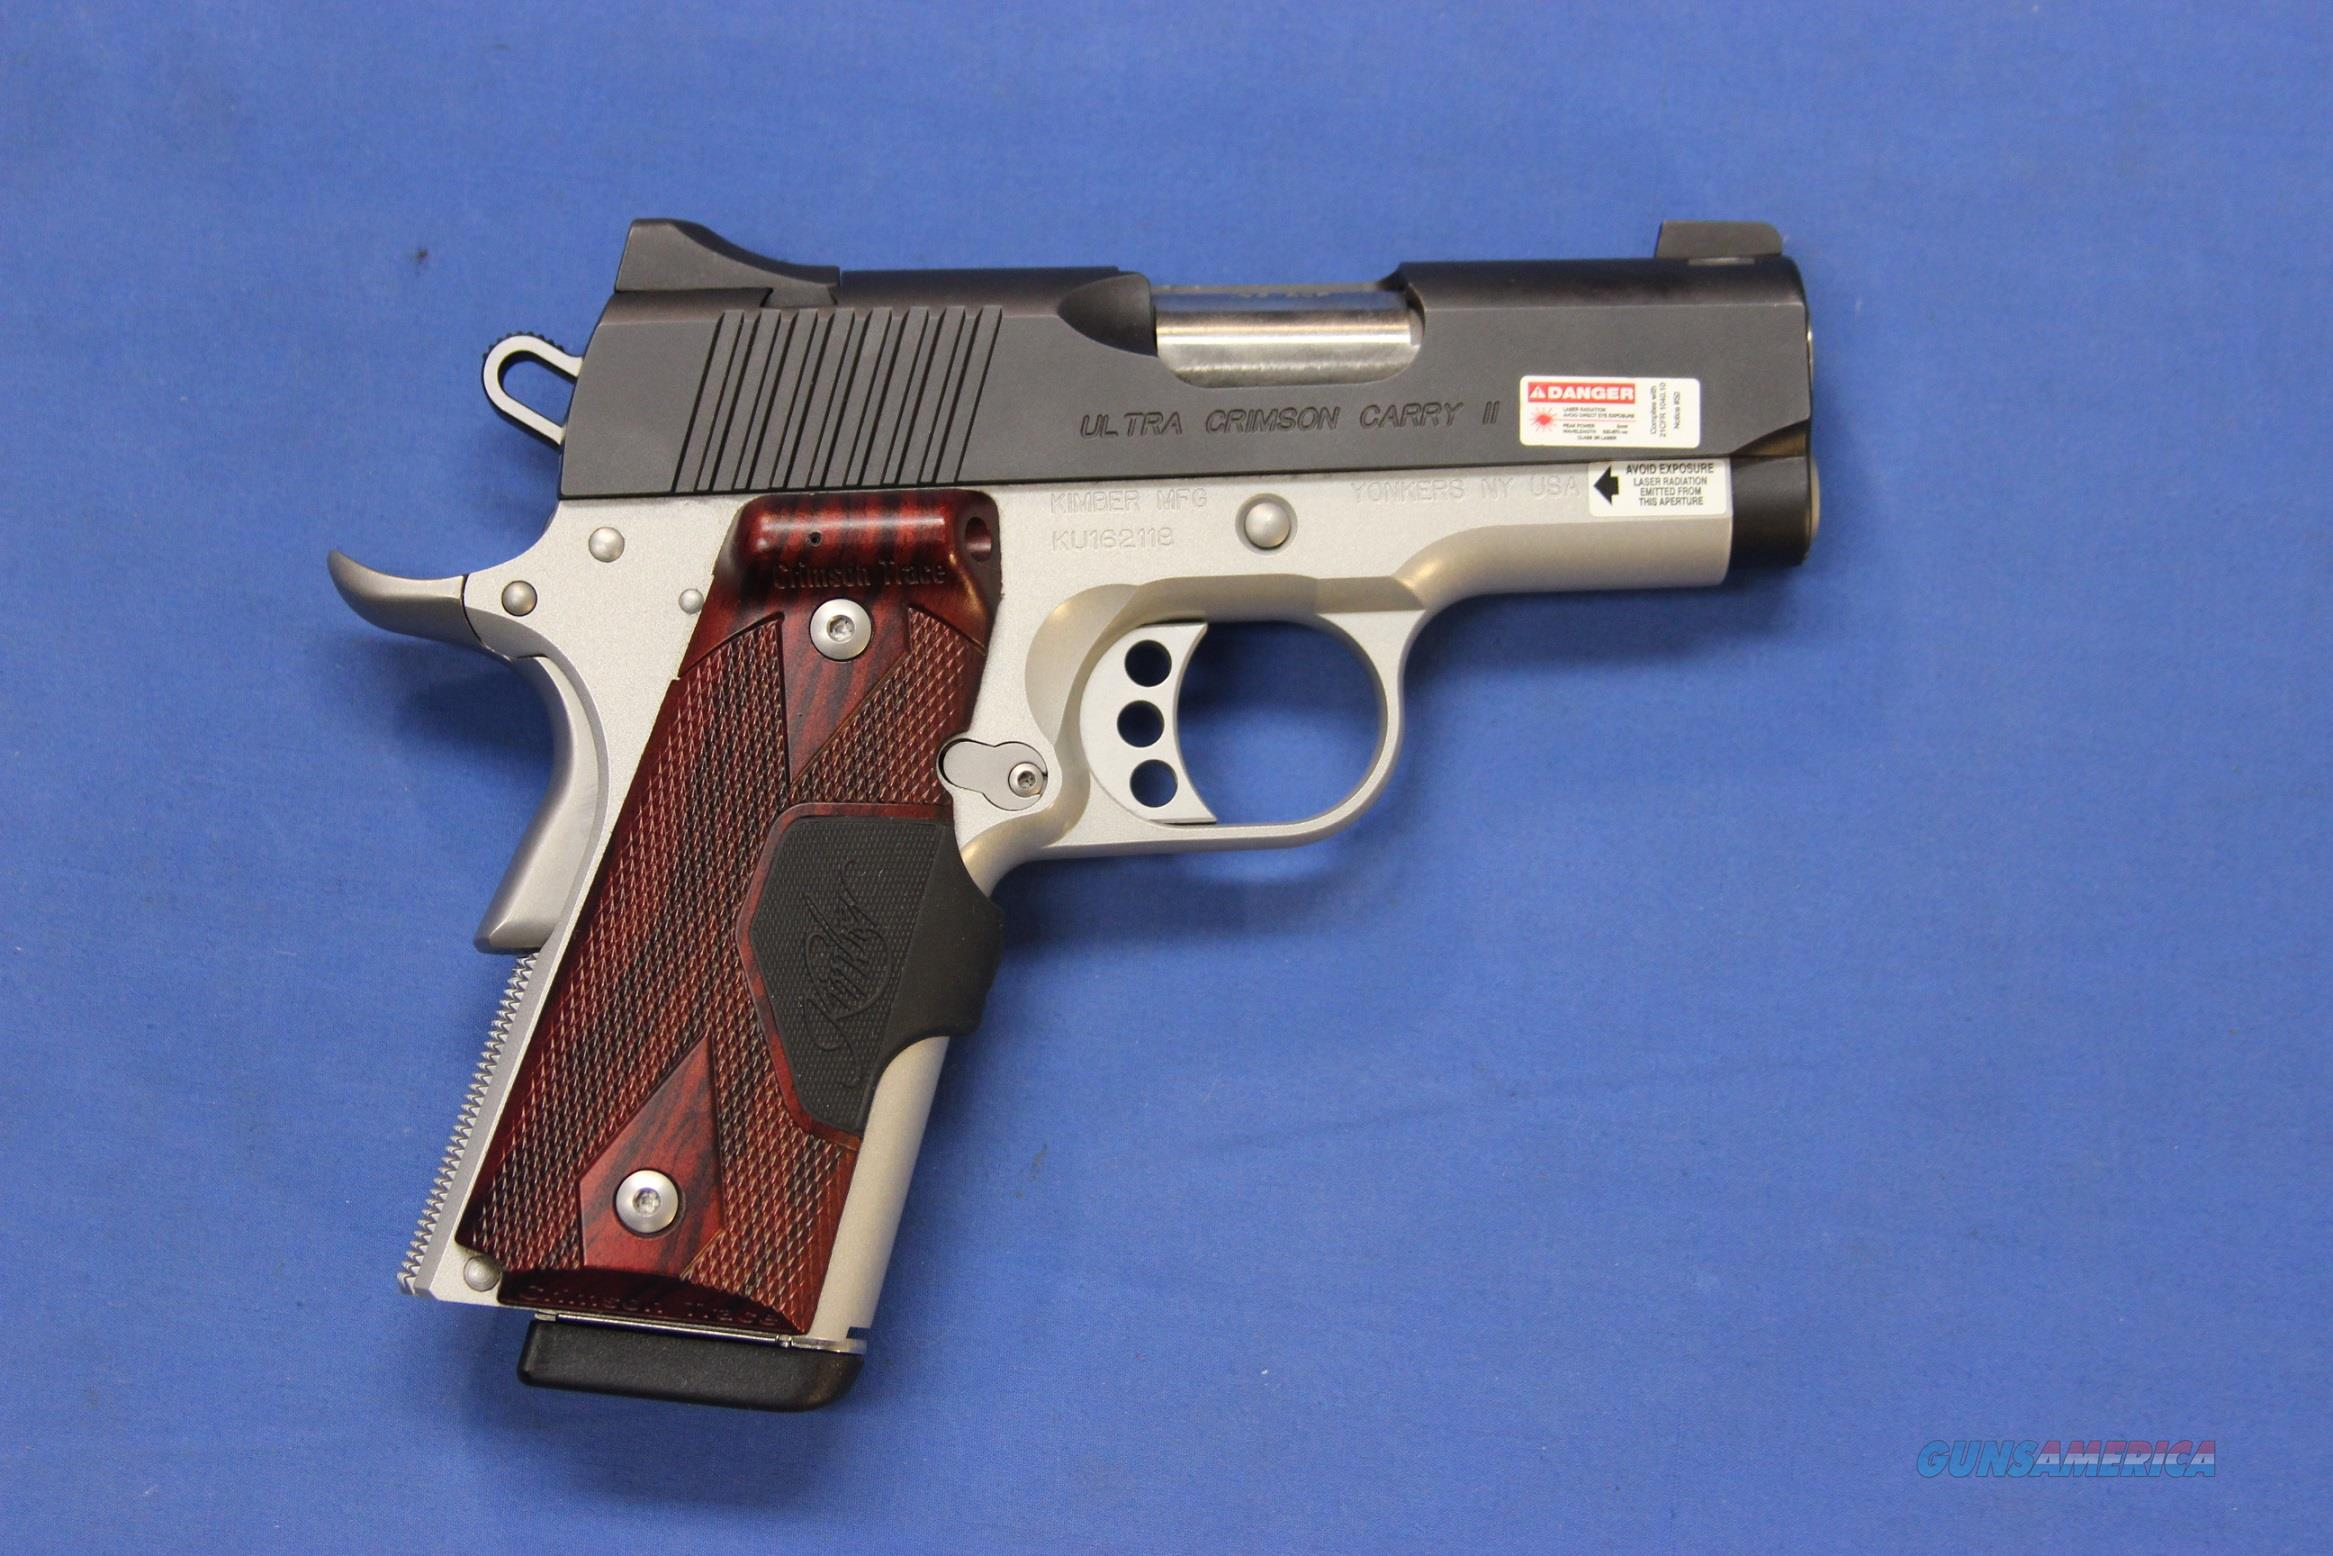 KIMBER ULTRA CRIMSON CARRY II .45 ACP w/BOX & MAGS  Guns > Pistols > Kimber of America Pistols > 1911